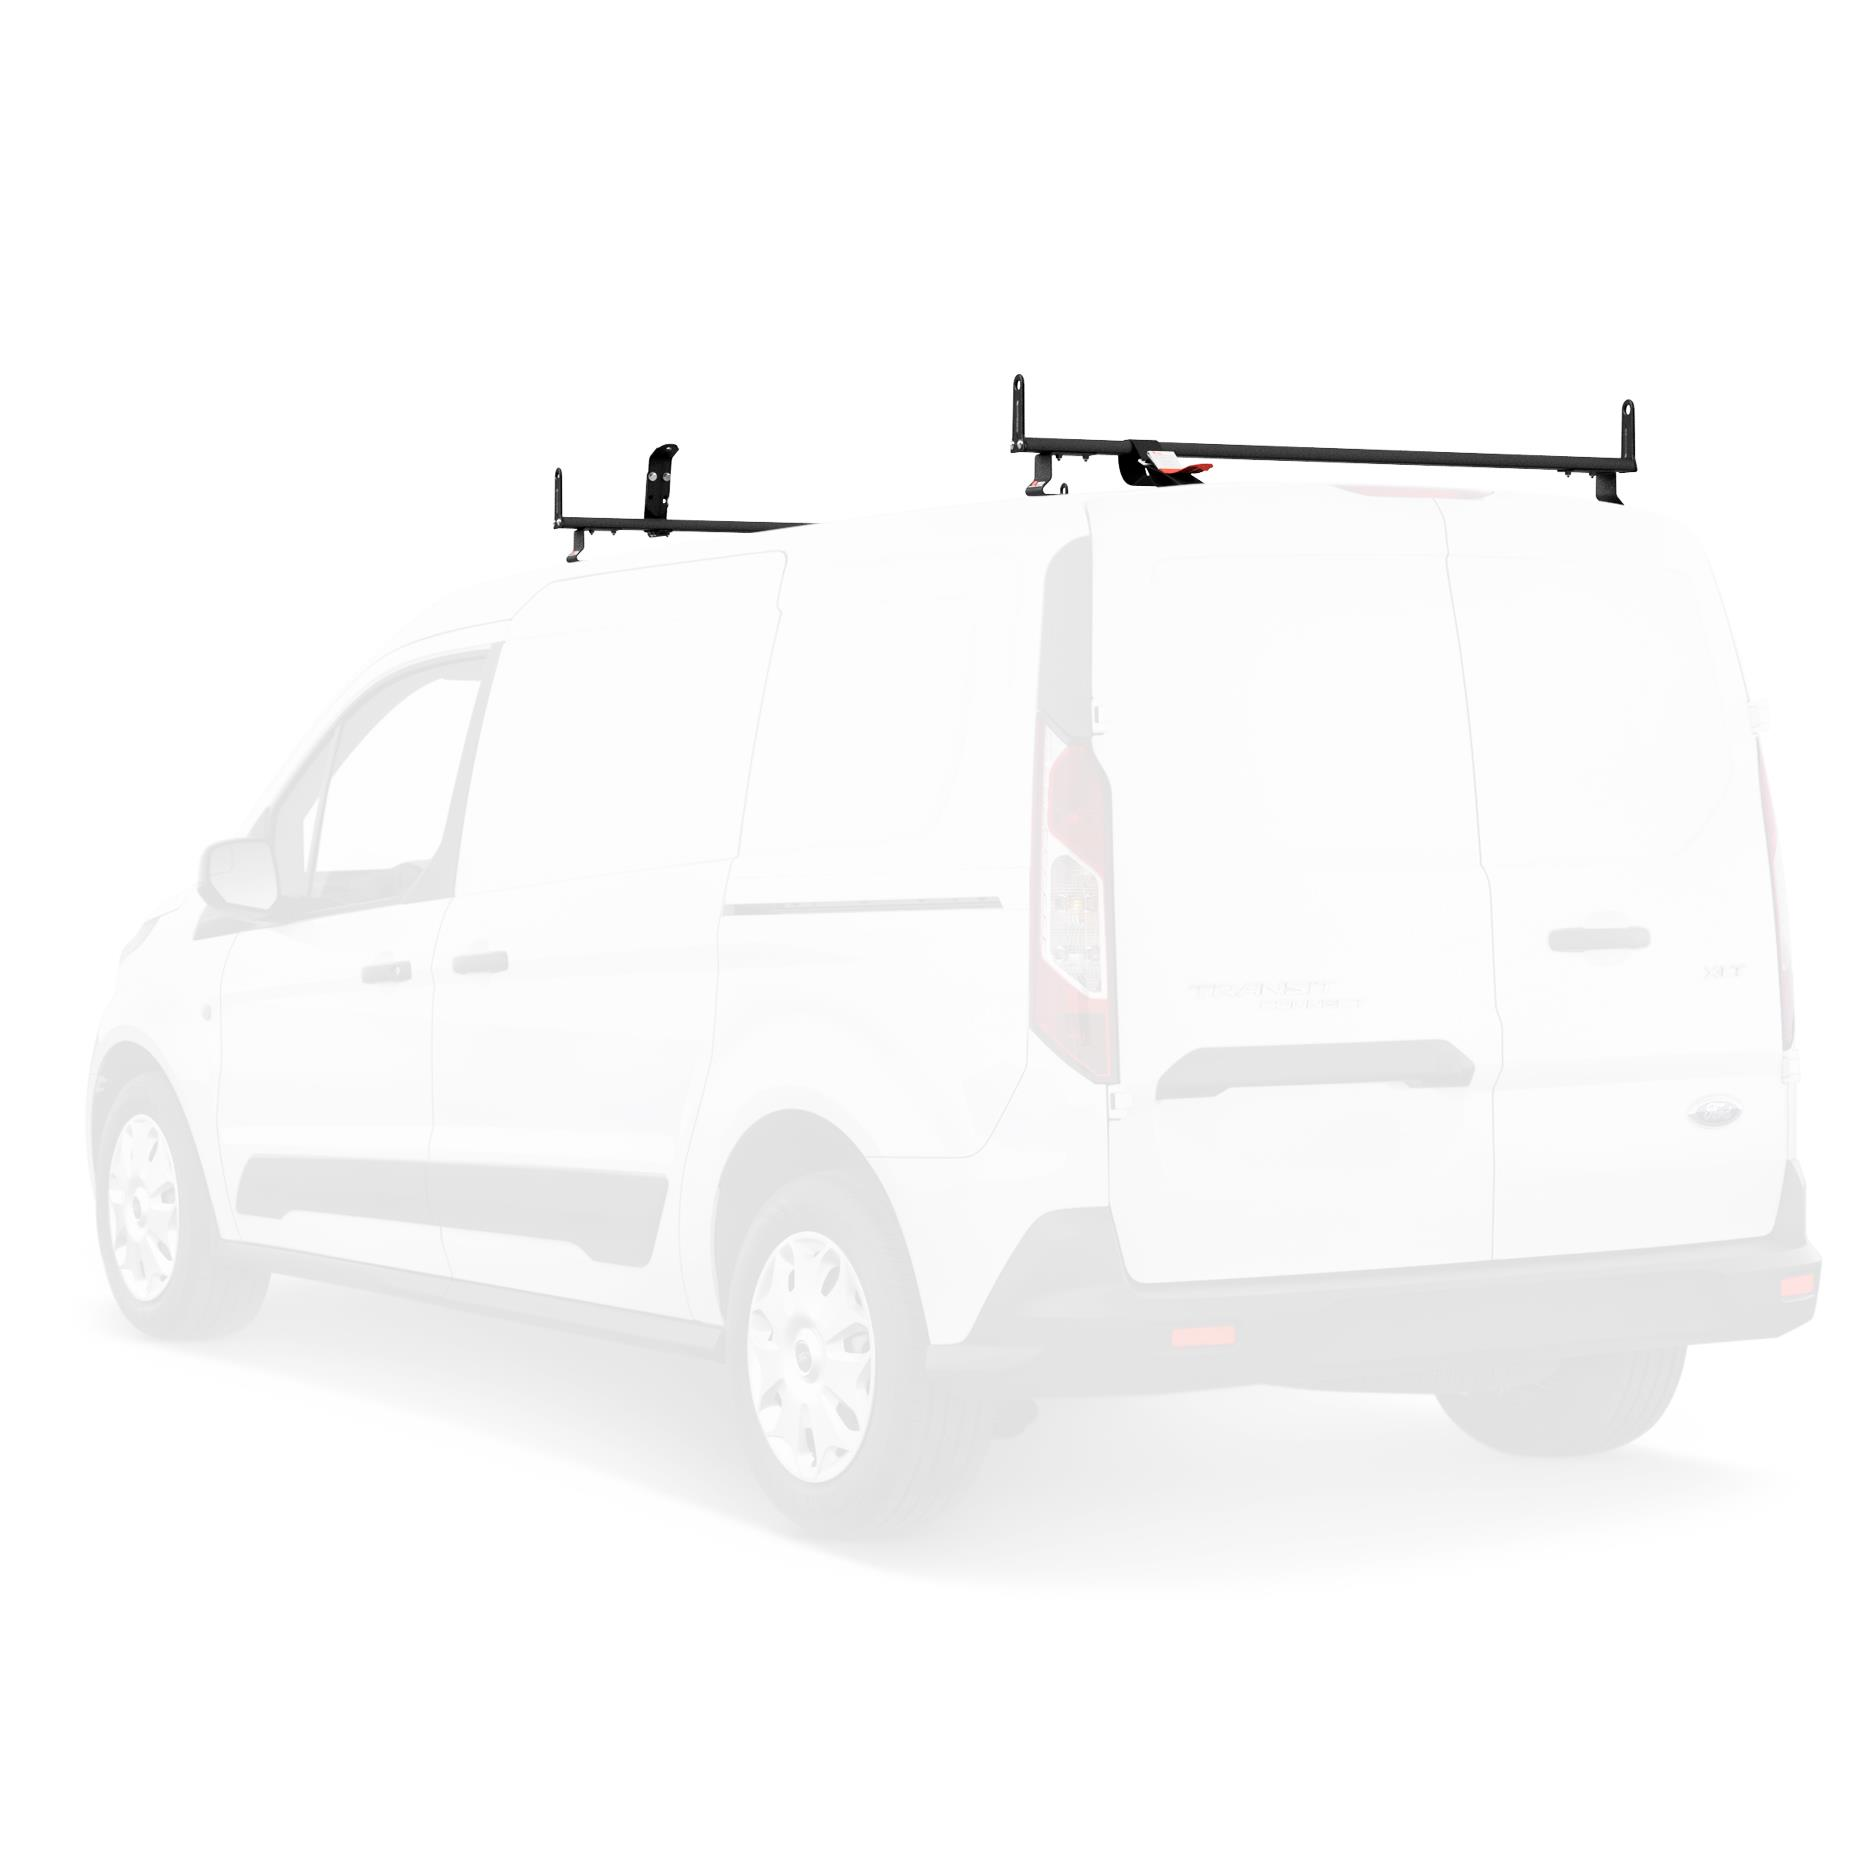 2 Bar Rack System for The Transit Connect 2010-13 and NV200 White